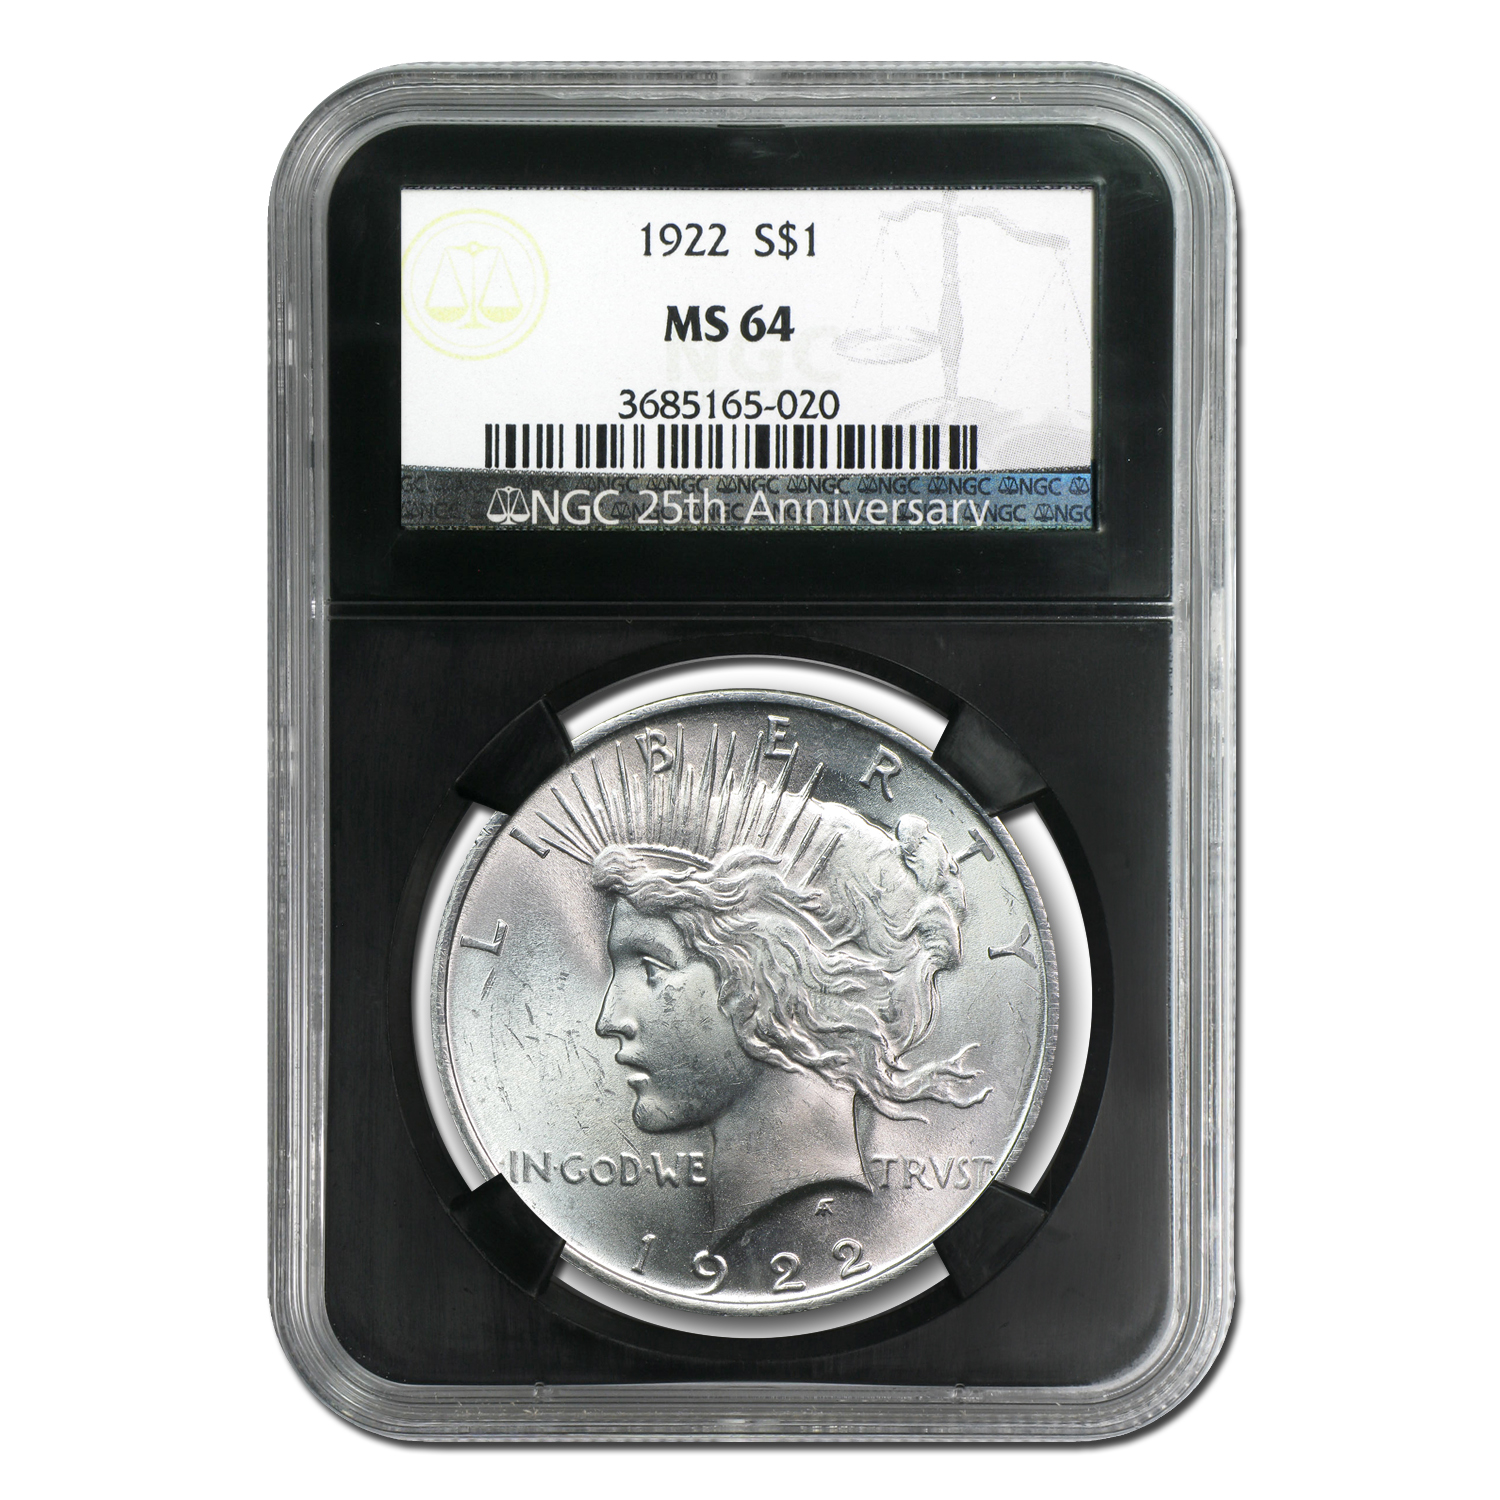 1922-1925 Peace Silver Dollar Set 4 Coins MS-64 NGC Black Holders